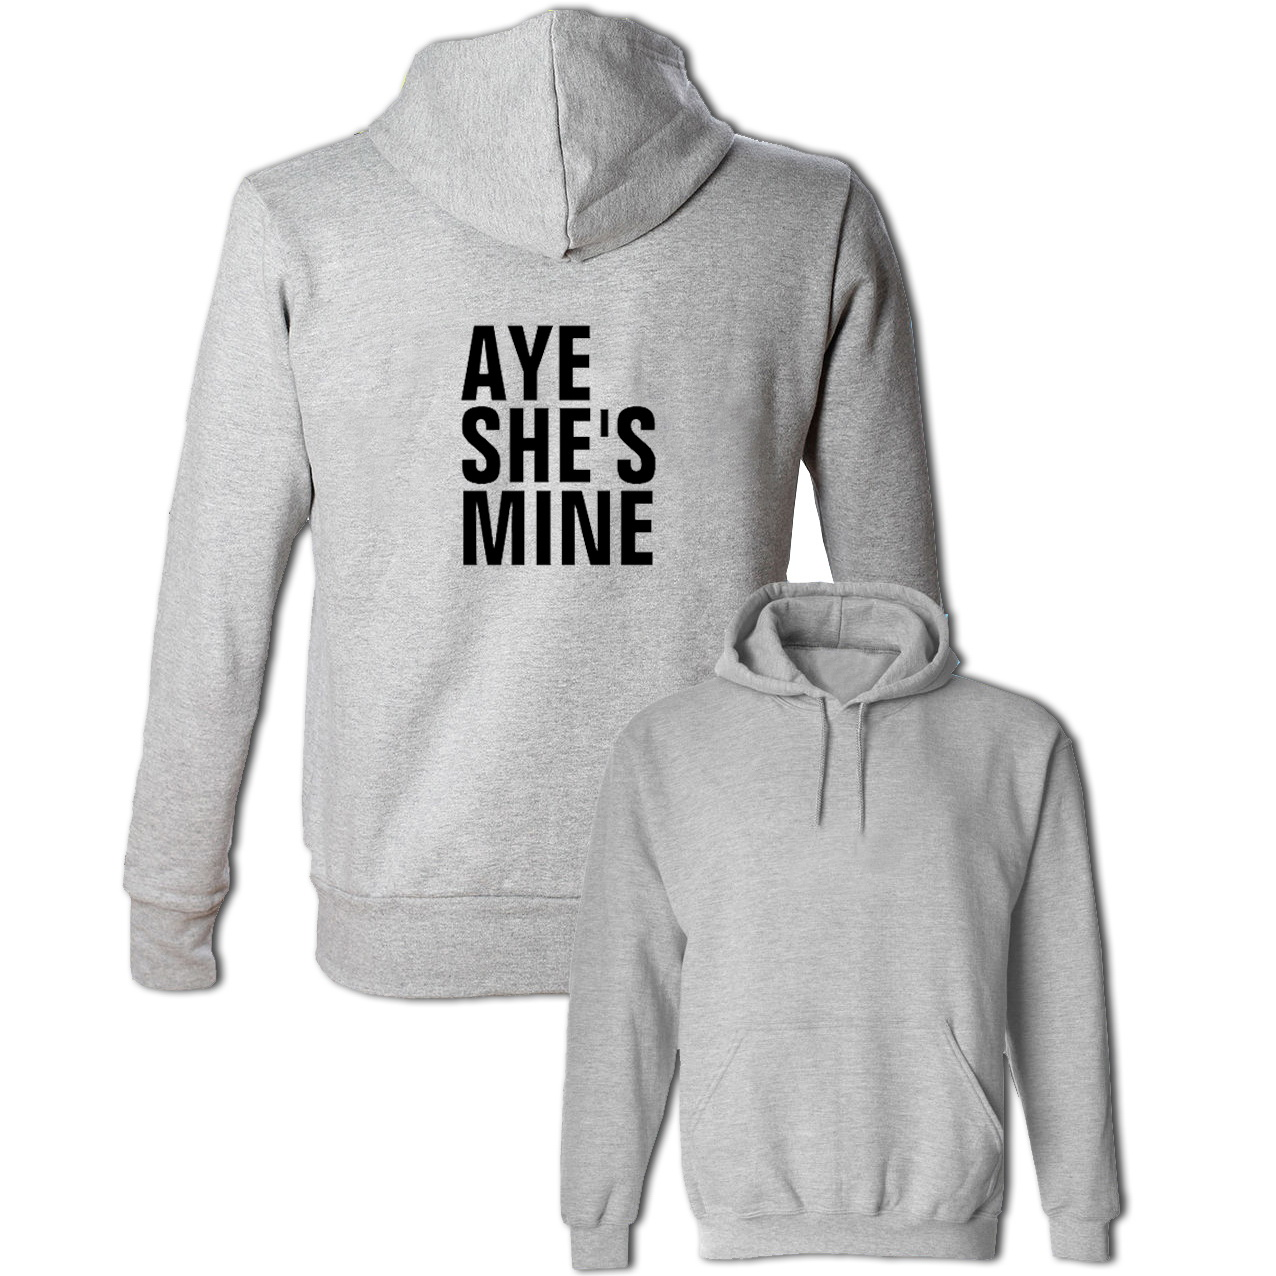 Aye She's Mine Couple Hoodies Men's Women's Girls Boys Sweatshirt Multi Color Cotton Jackets Hip Hop Fashion Tops Size S-3XL